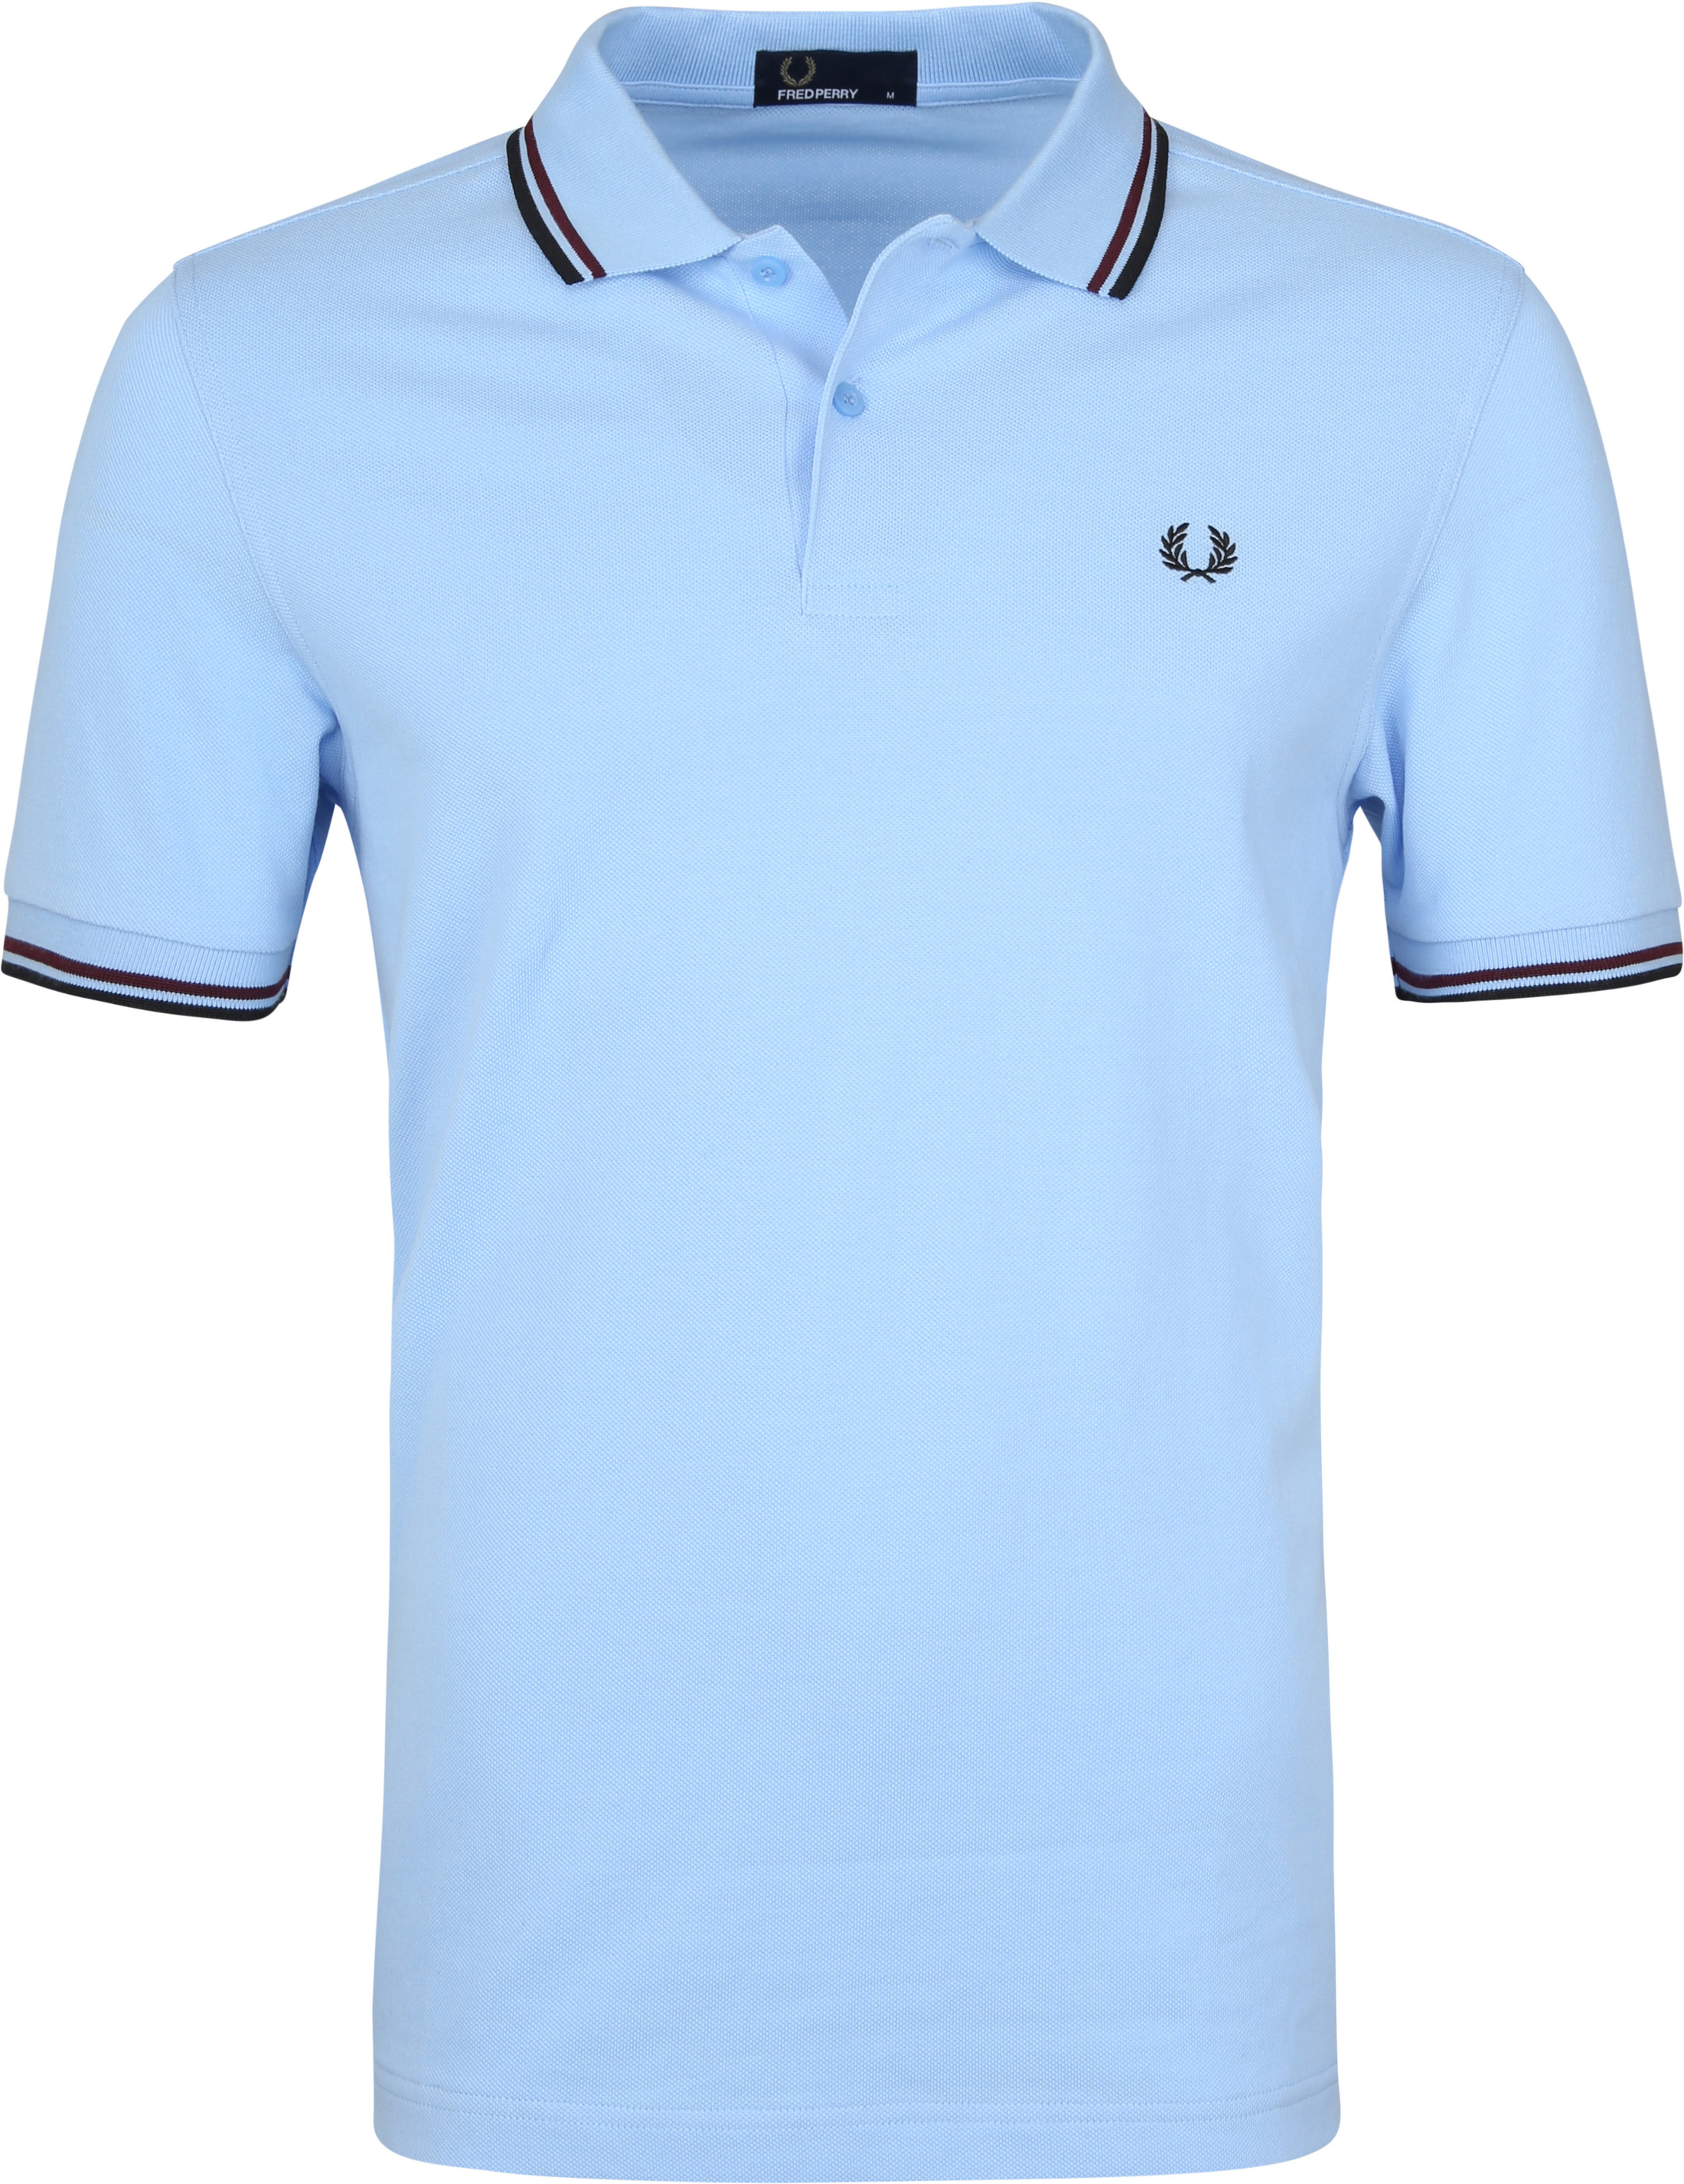 Sun68 Poloshirt Small Stripe Blue SF foto 3